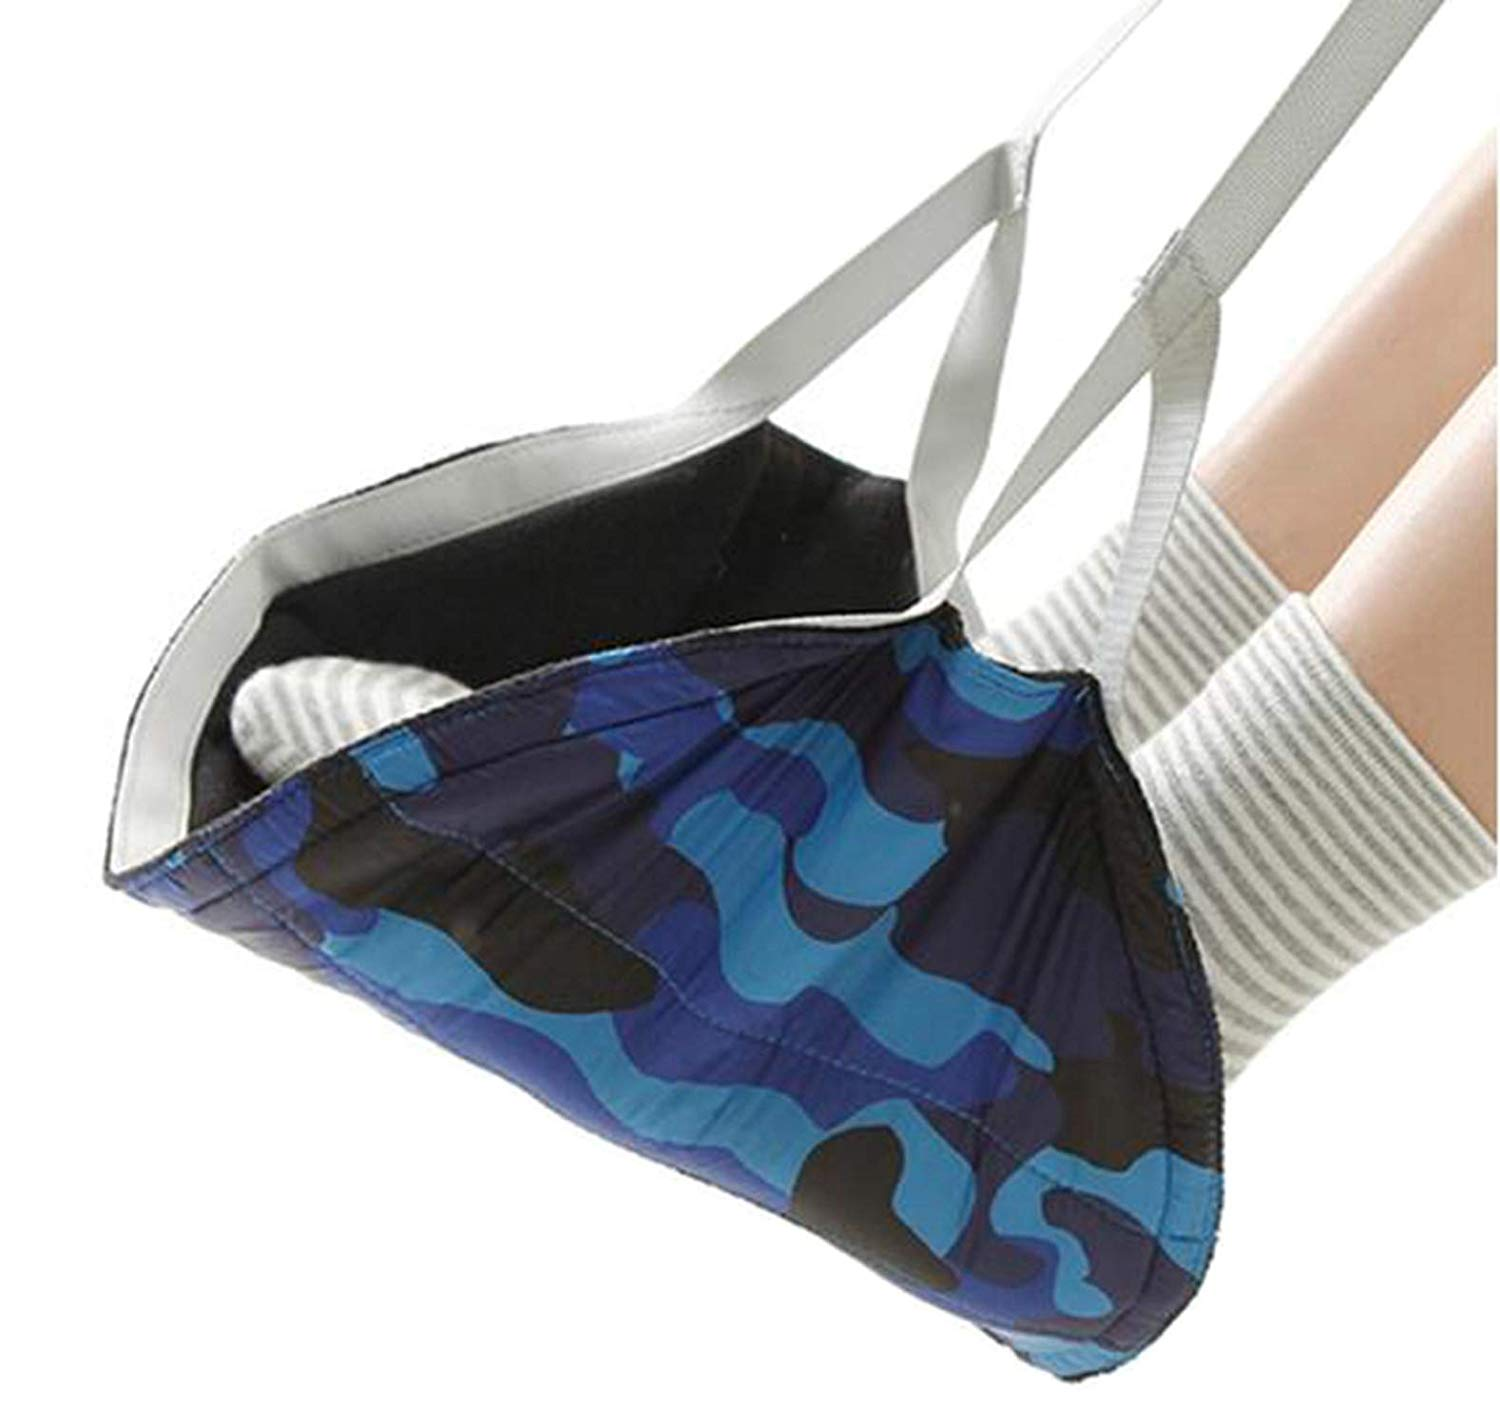 Travel Airplane Portable Foot Rest,Fukalu Feet Hammock Swing and Hang Feet [Preventing Leg Swelling] Plane Footrest, Adjustable Height Portable Travel Foot Rest for Airplane Office (Camo Blue)